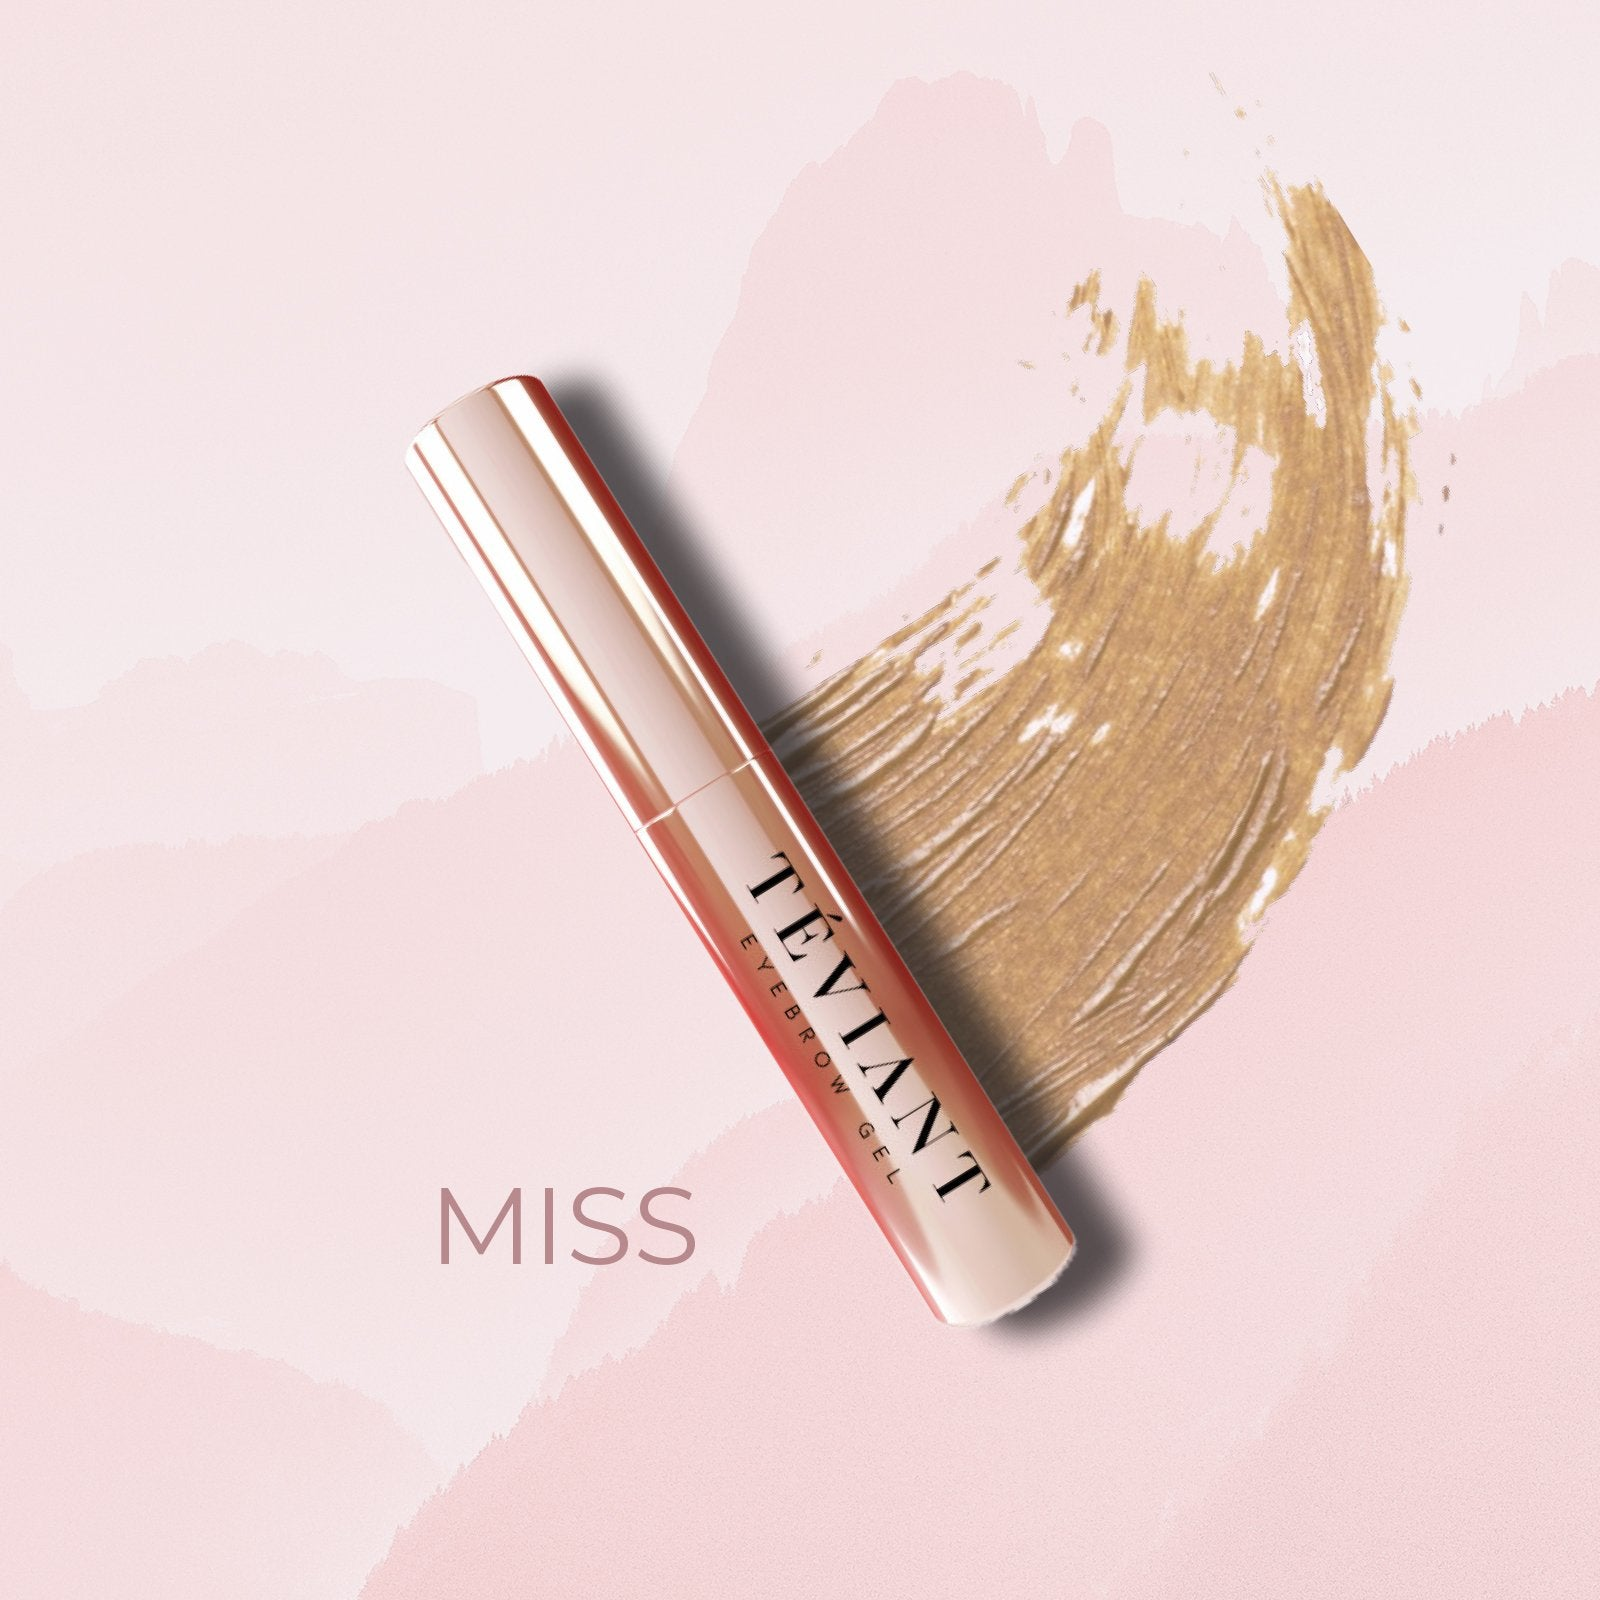 MISS EYEBROW GEL - Teviant Beauty